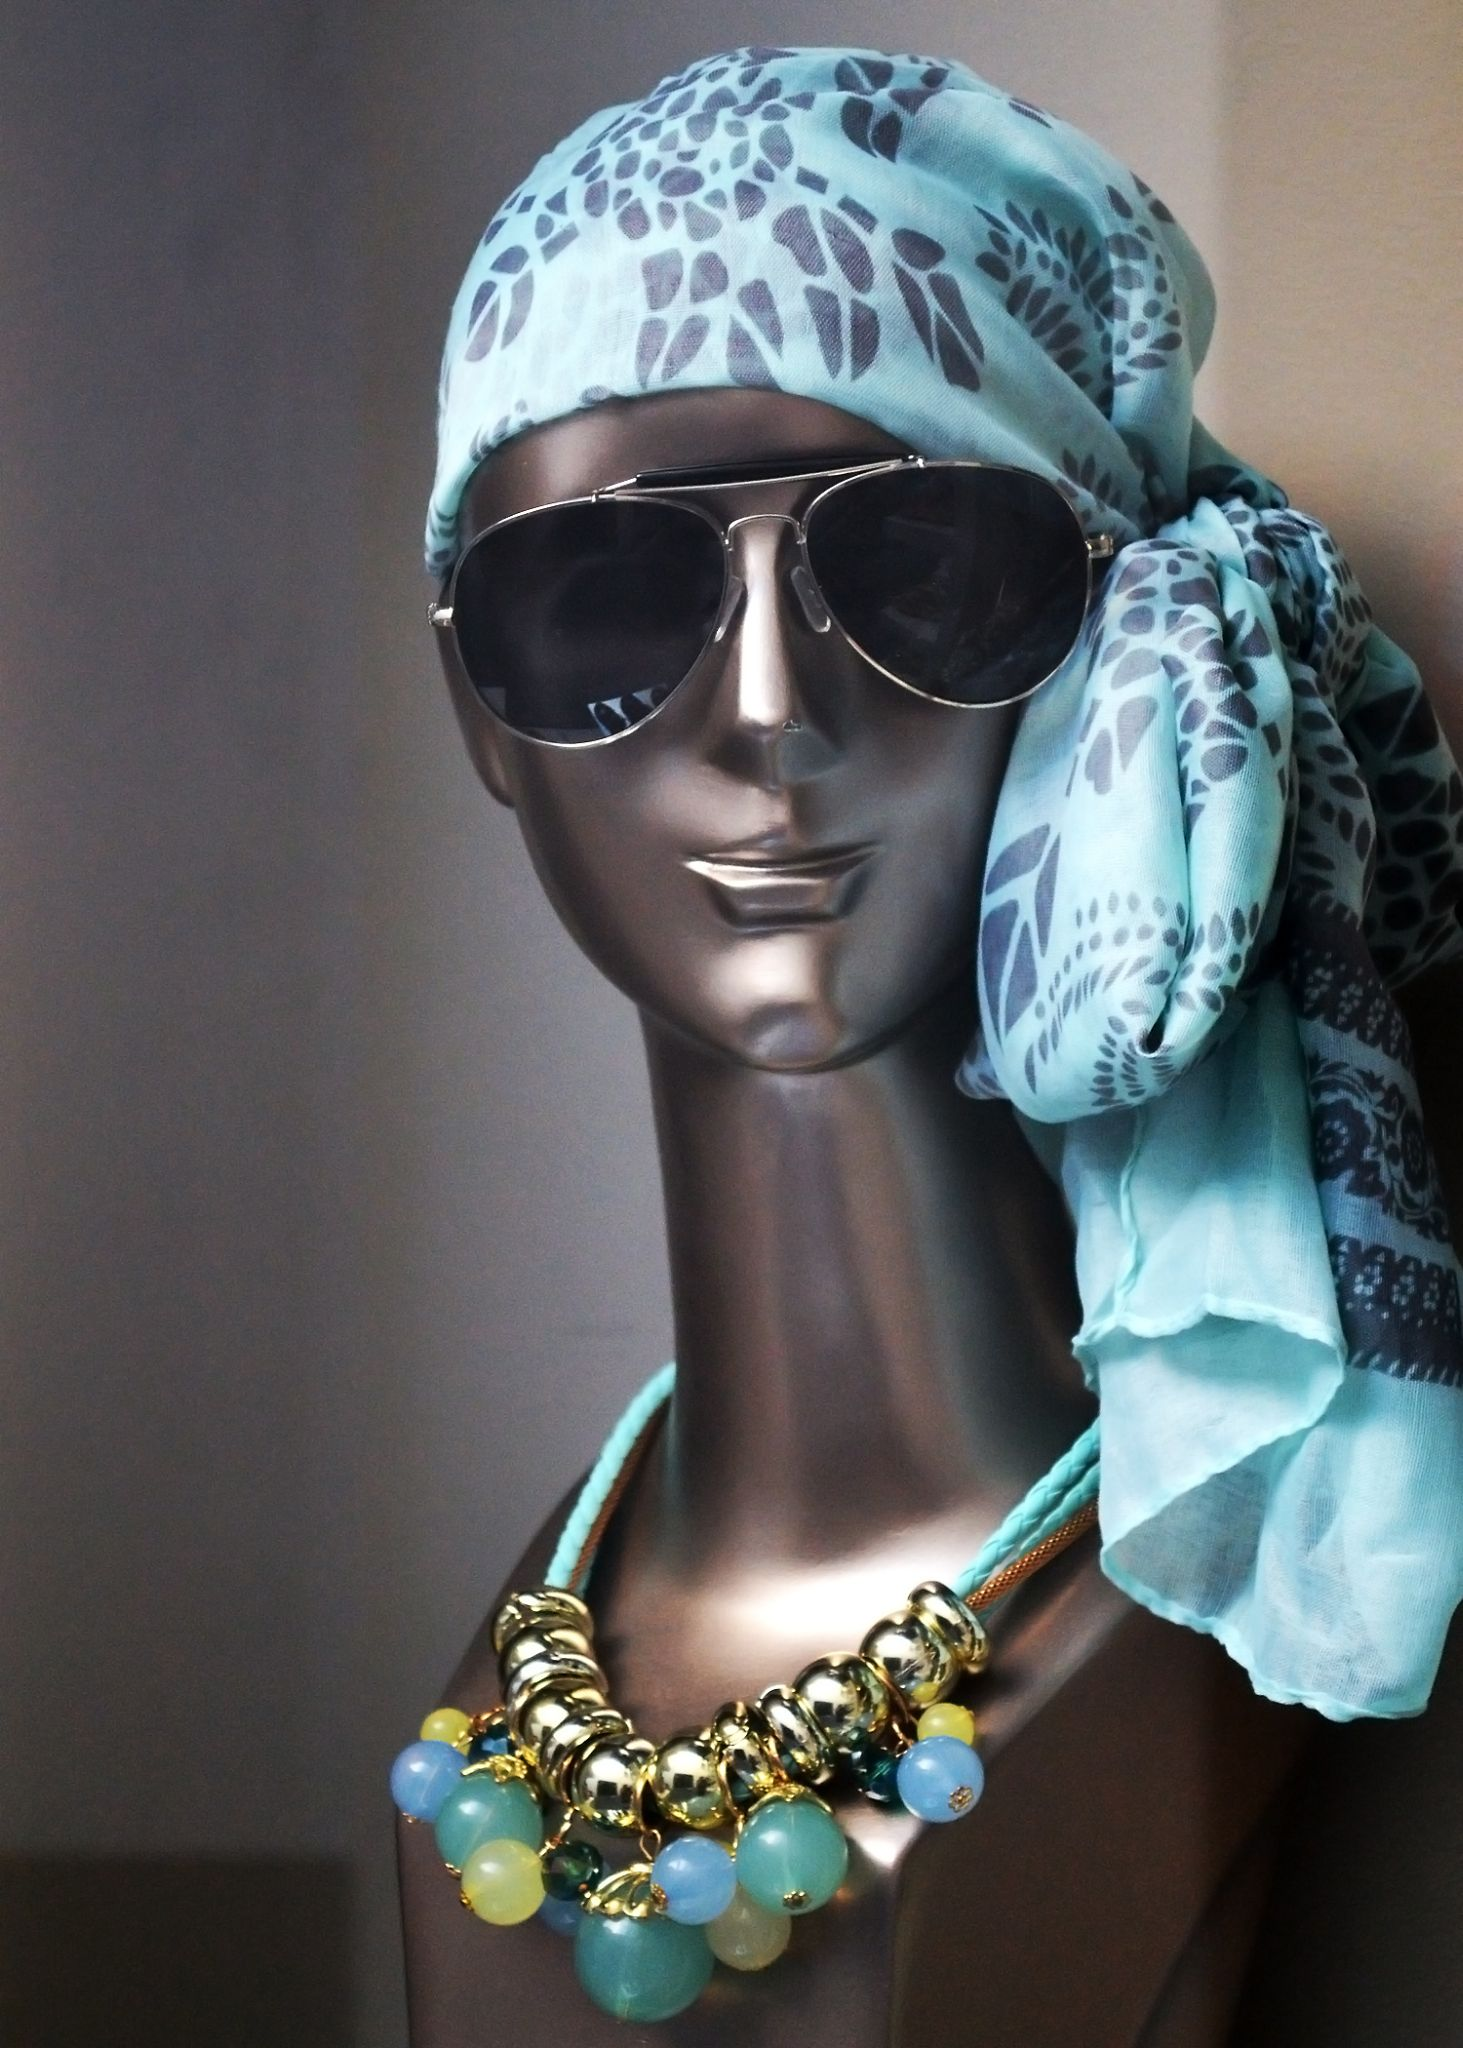 Mannequin by FotoMadeira